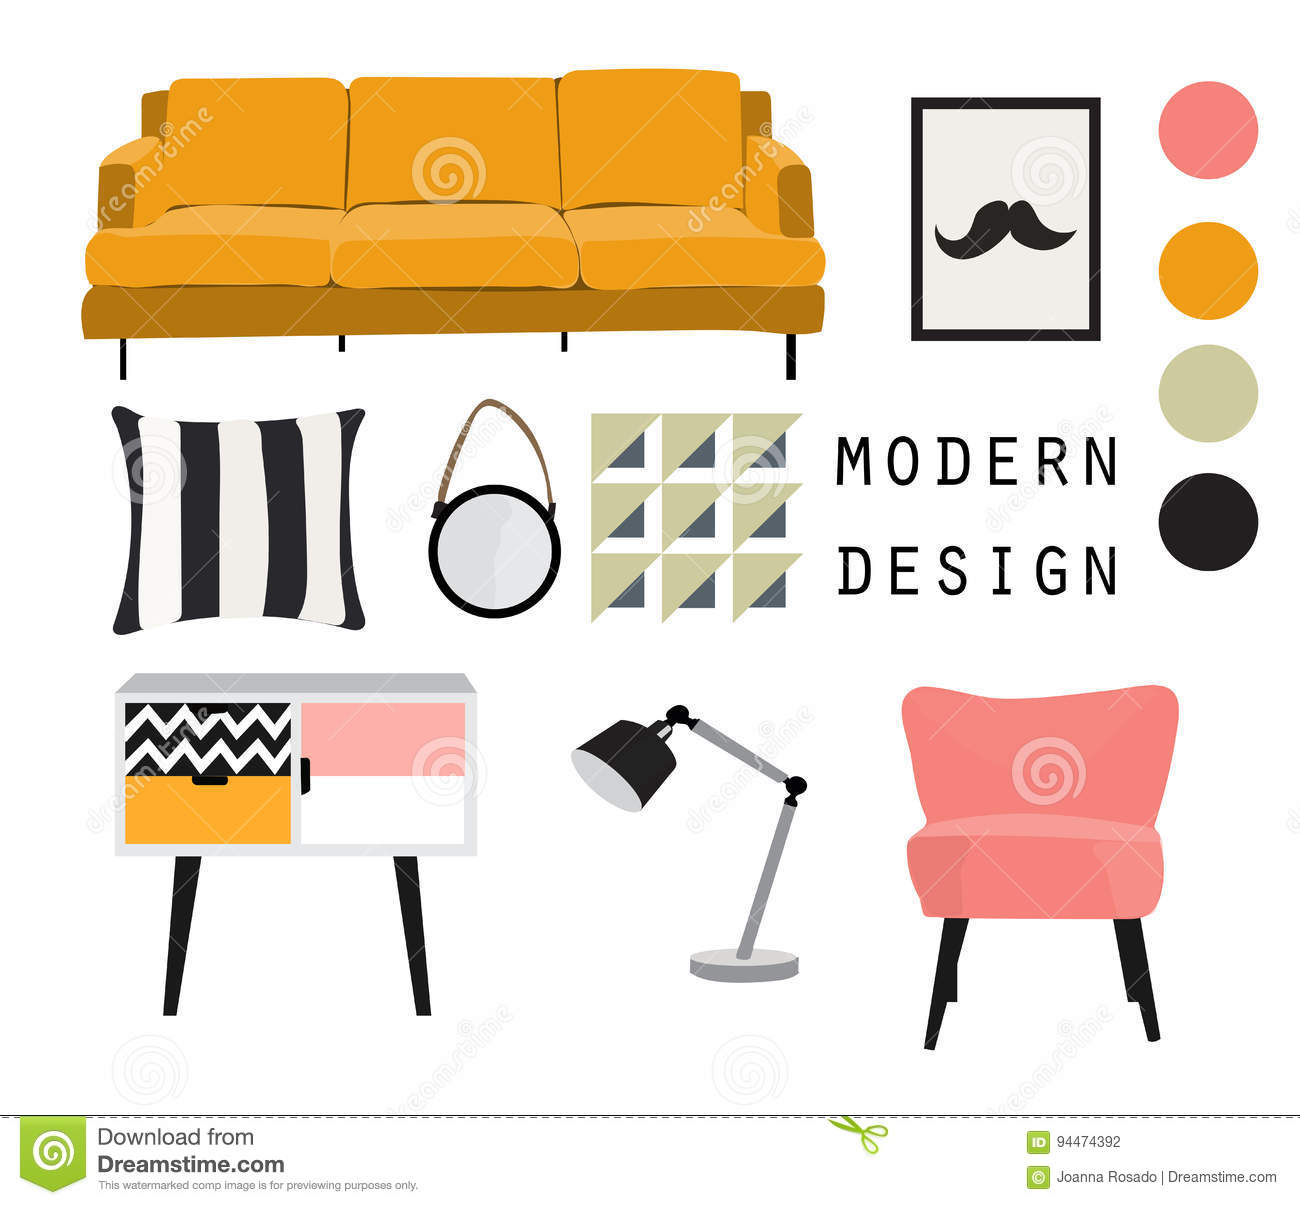 Royalty Free Vector Board Century Design Elements Furniture Home Interior